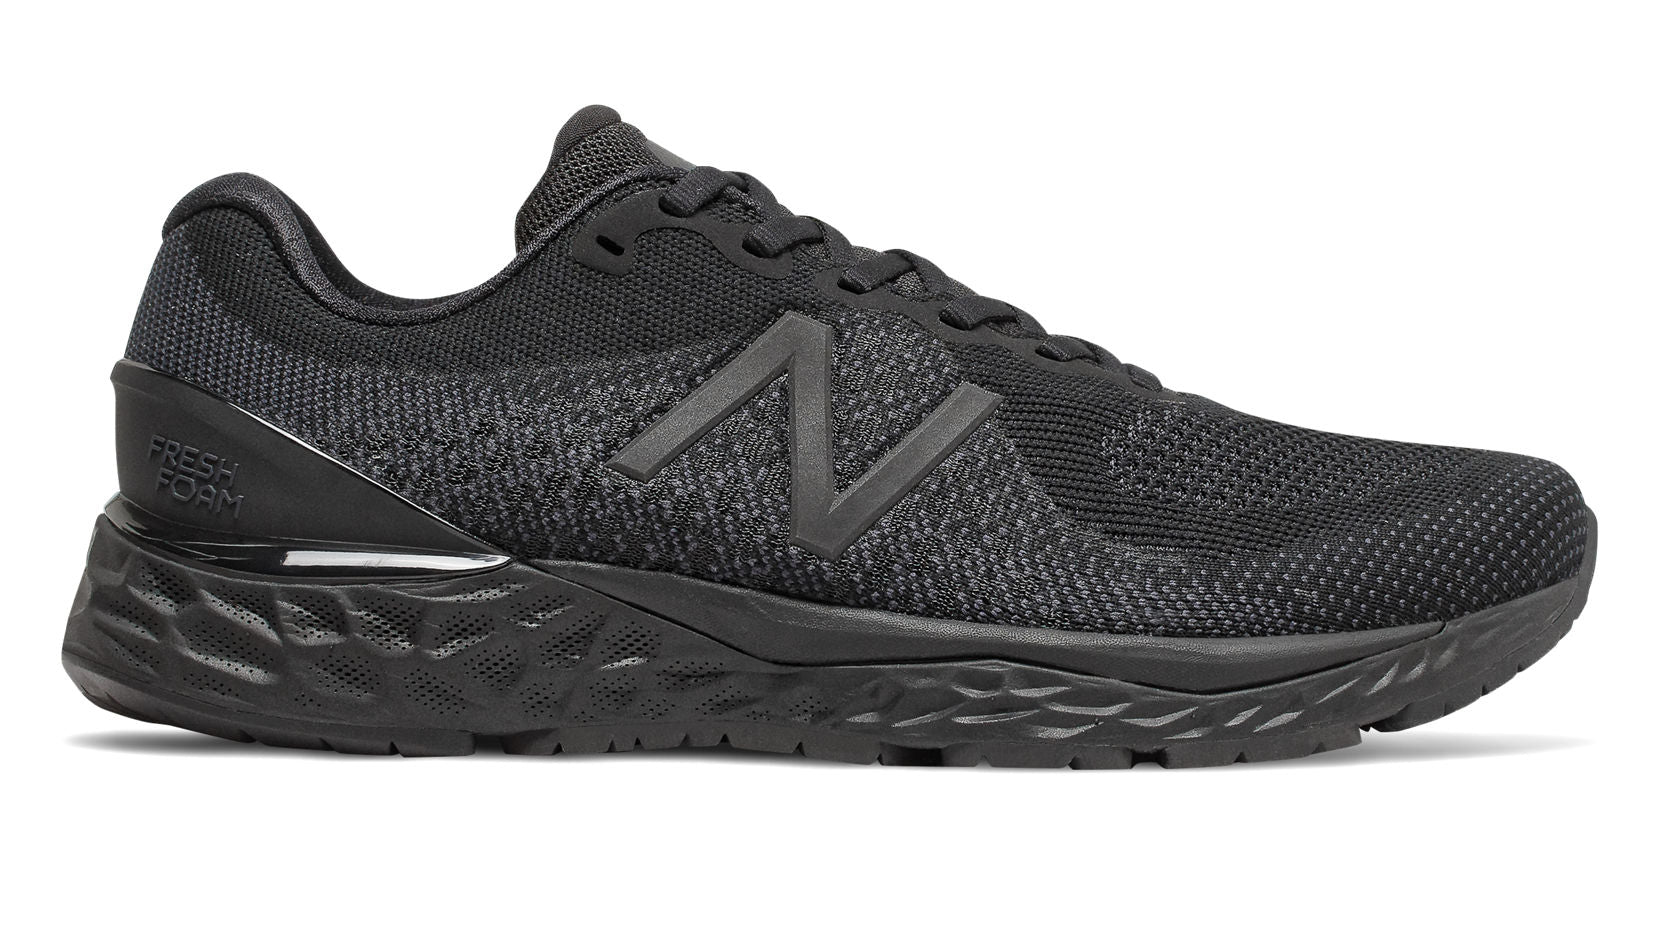 New Balance 880 M880T10 Black Men's running shoes with Removable Footbed